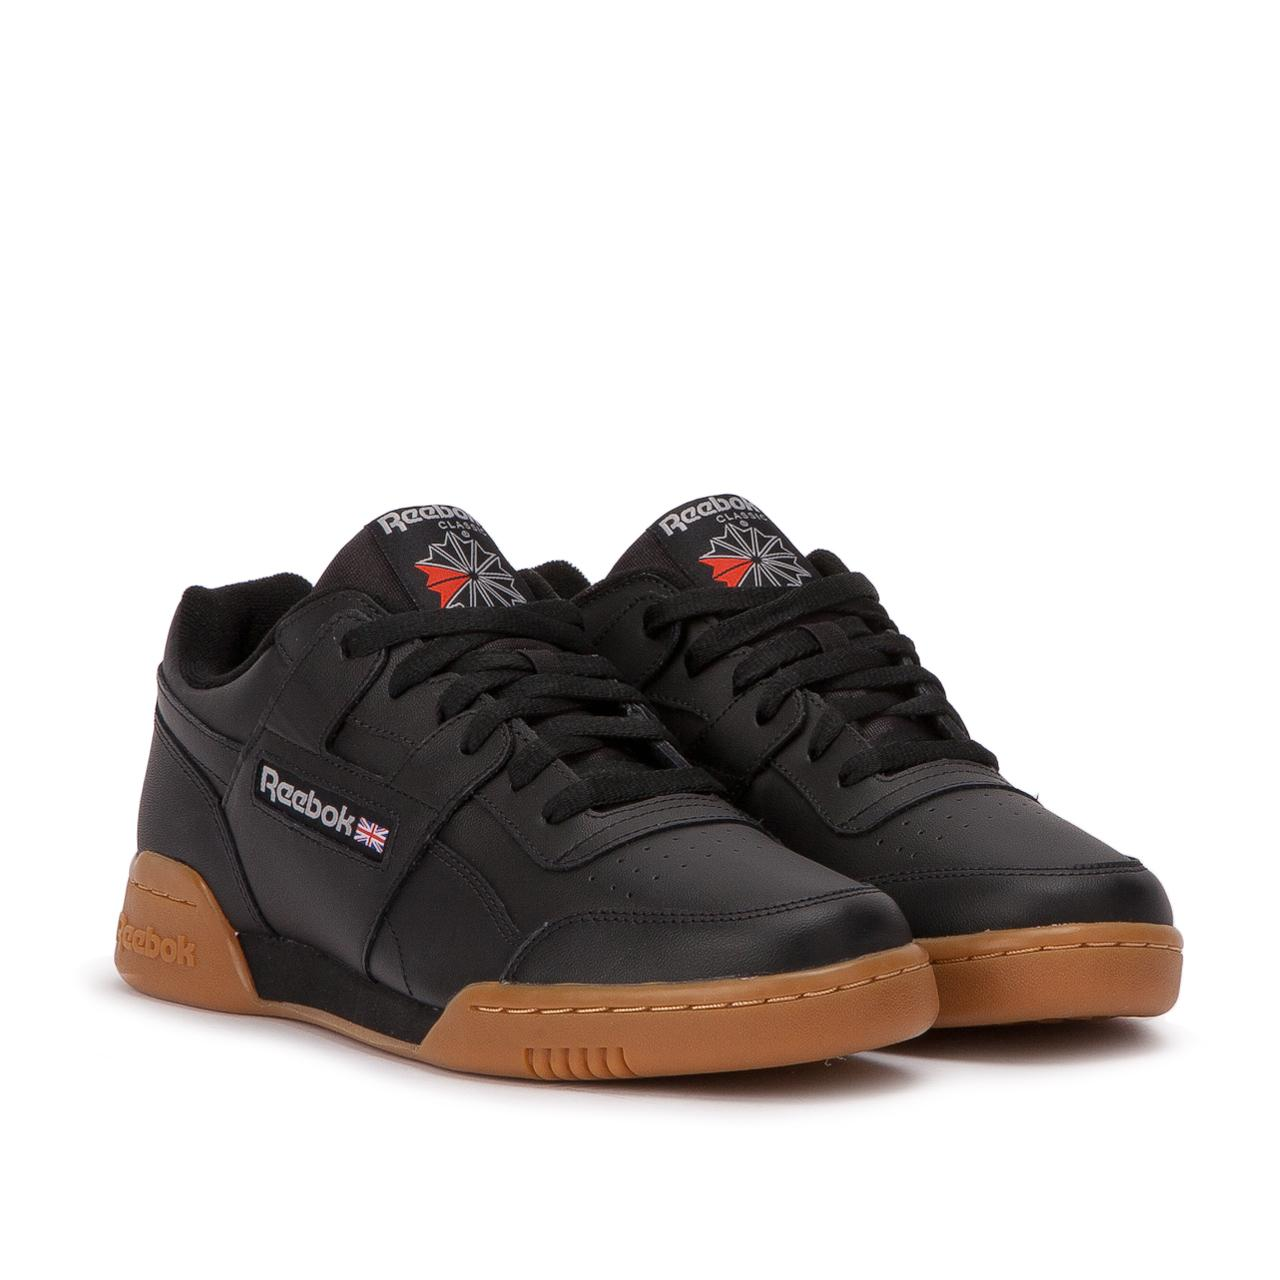 8f7e9f62c7da38 Reebok - Black Workout Plus Gum Sole (cn2127) for Men - Lyst. View  fullscreen